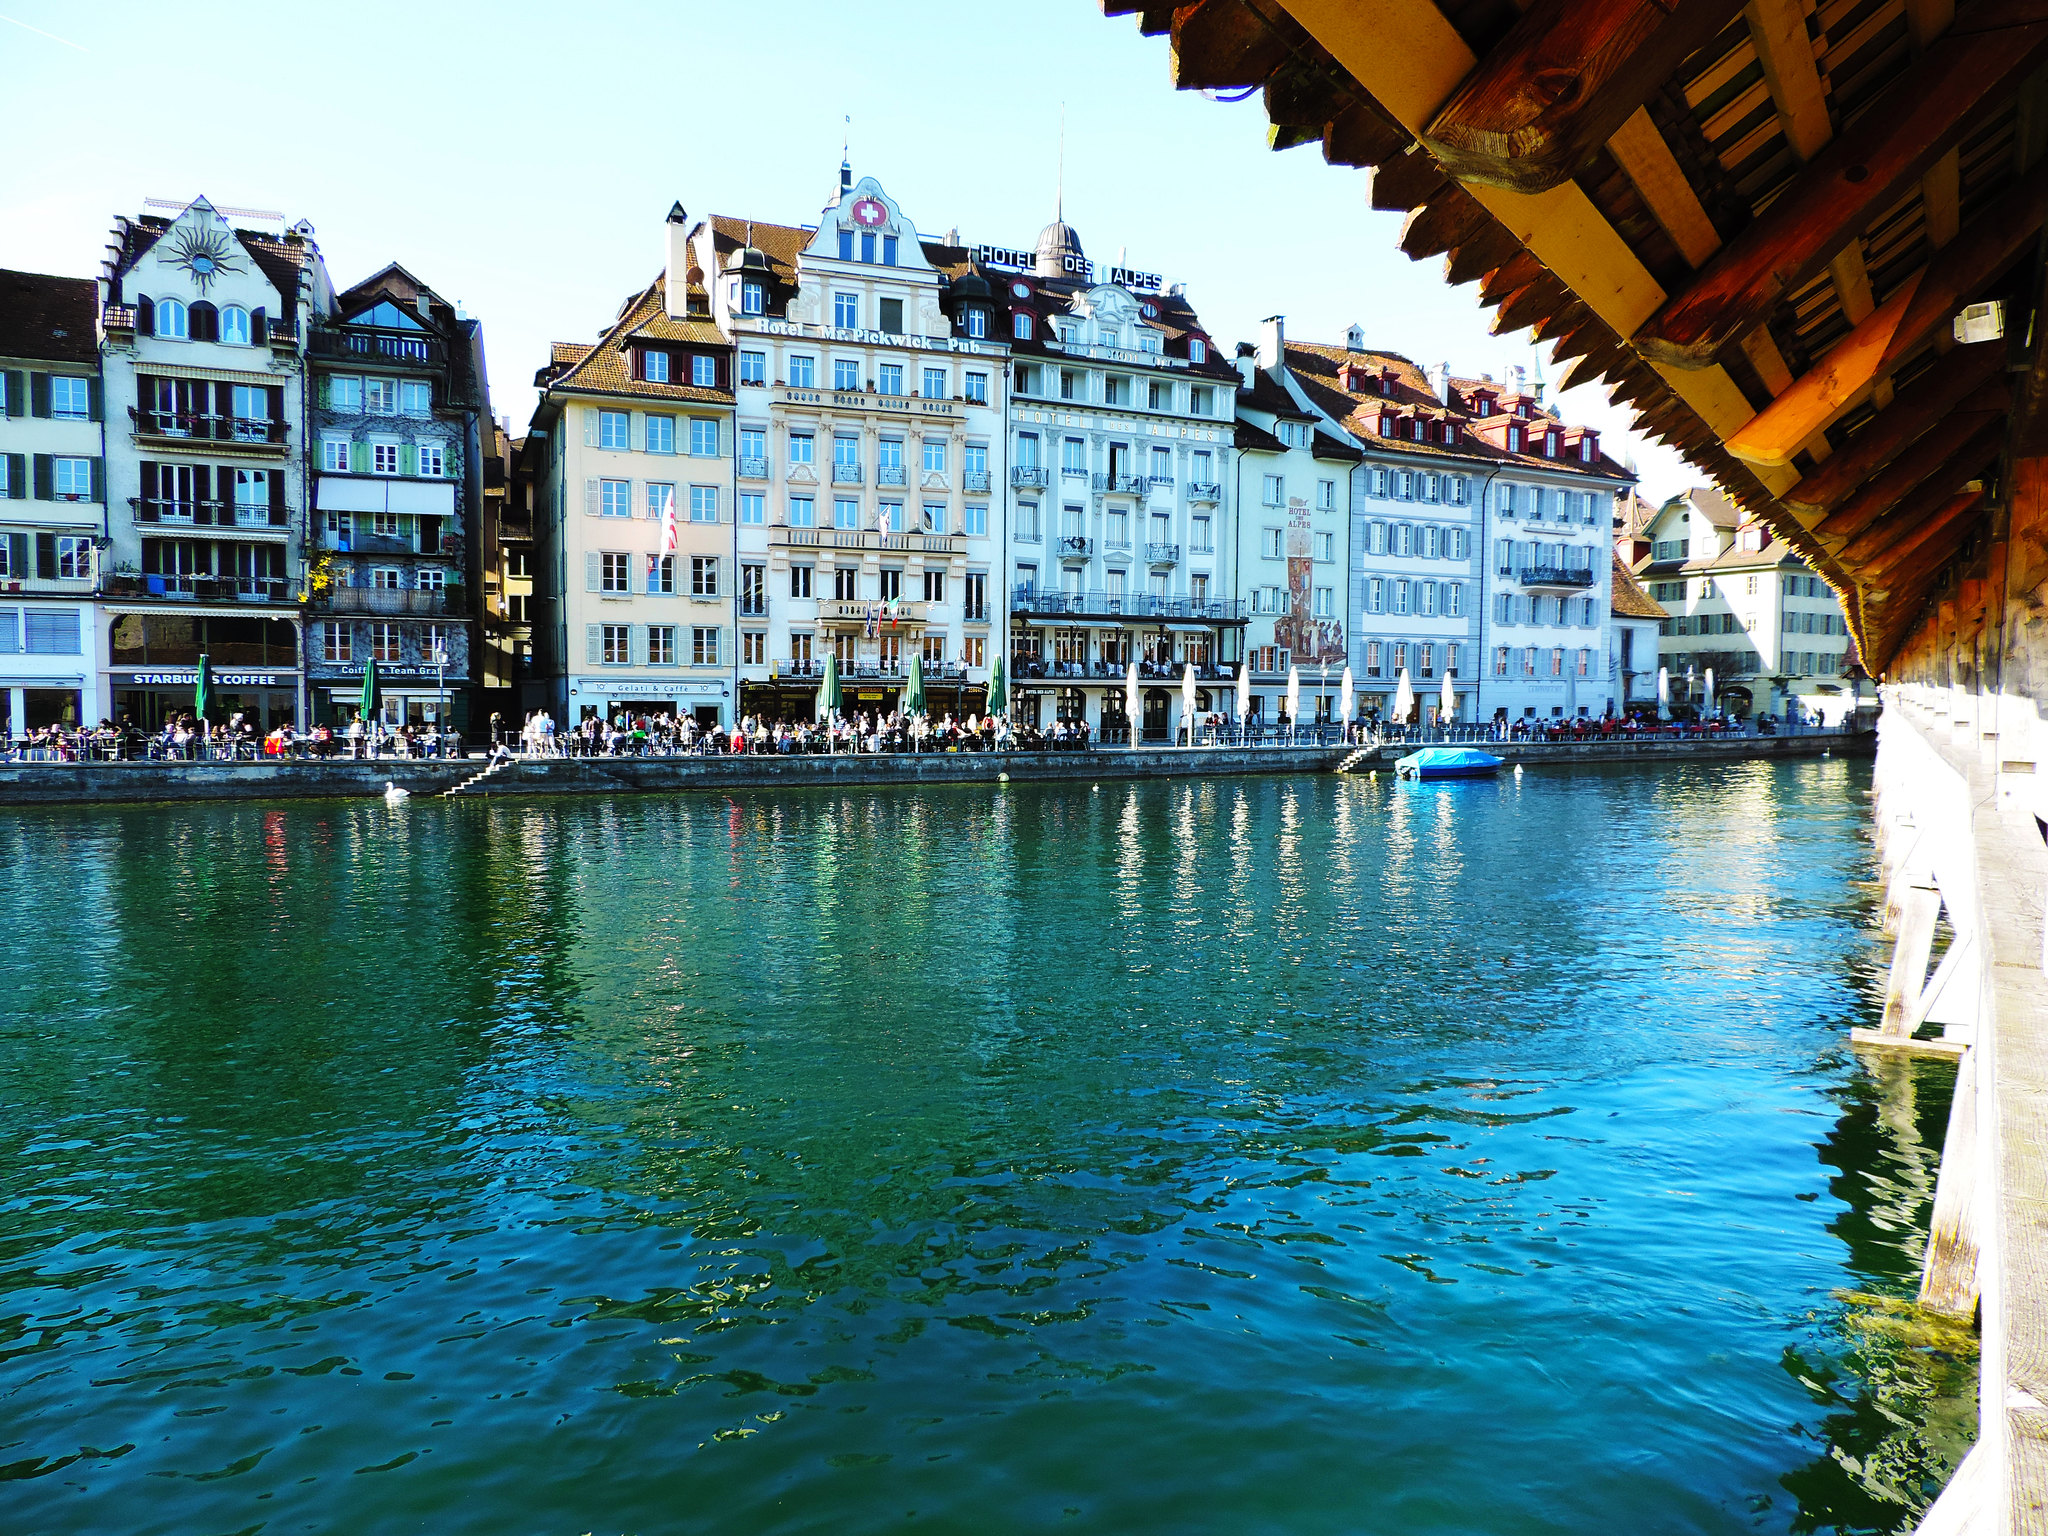 8 Romantic European Small Towns: Lucerne, Switzerland